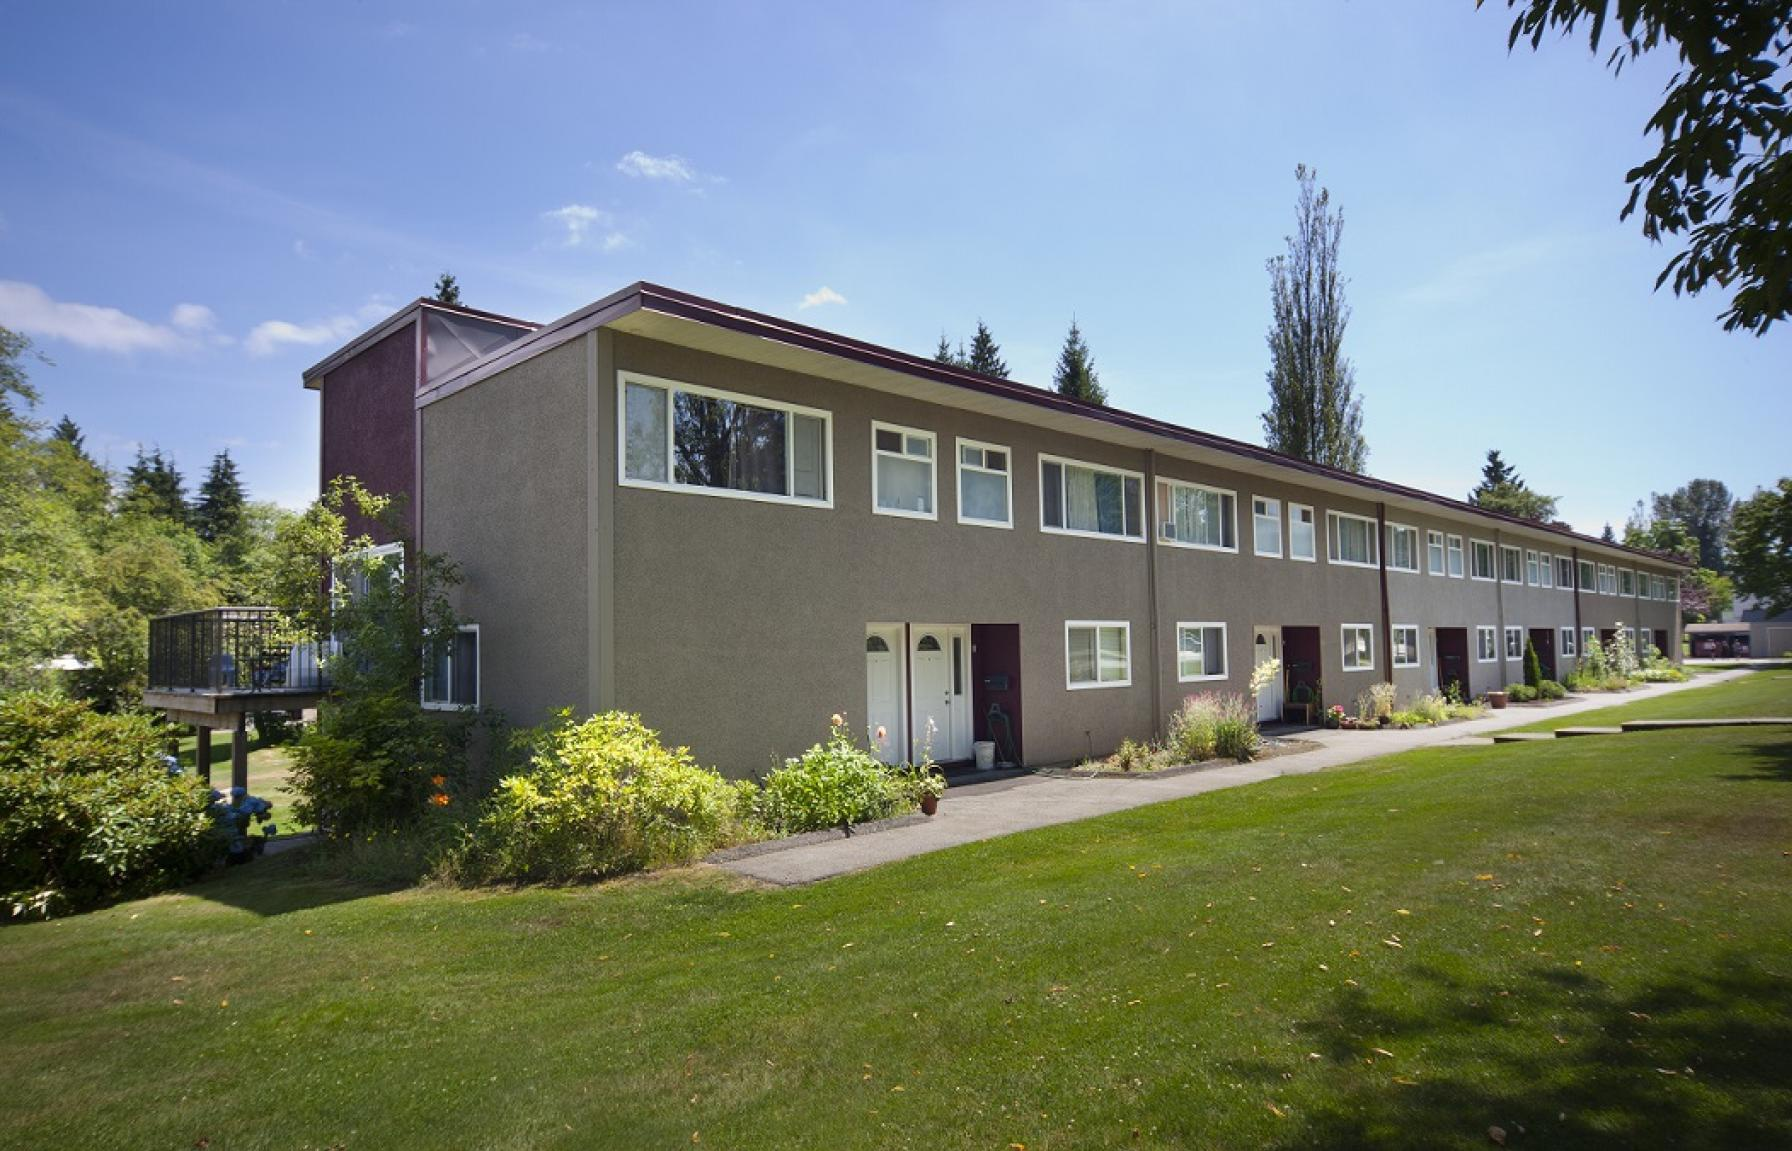 1190 Cecile Drive in Port Moody, BC is Now Available